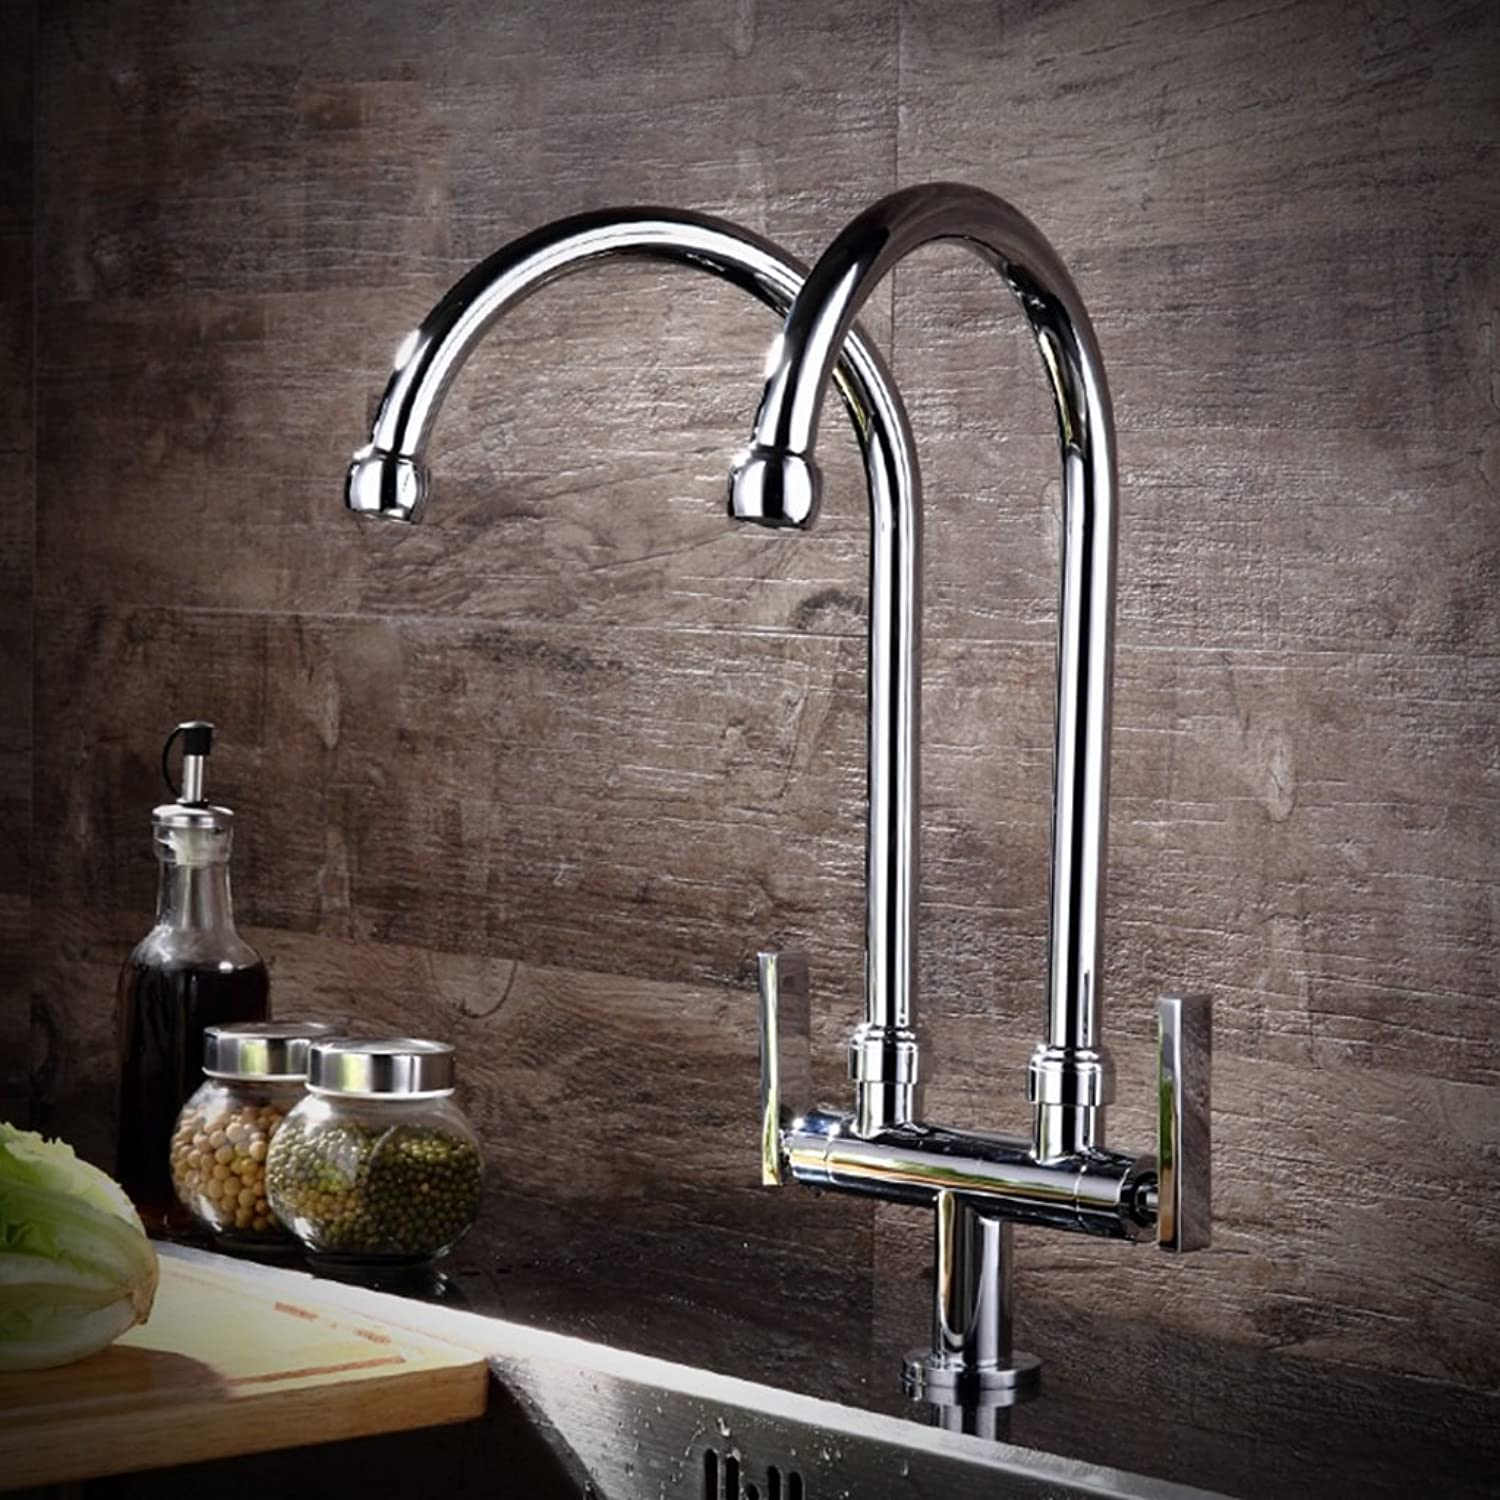 FJH Modern Minimalist Pure Copper Kitchen Faucet Cold Type Double Pipe Faucet Wash Basin Sink Can Be redated Faucet (Size   A)